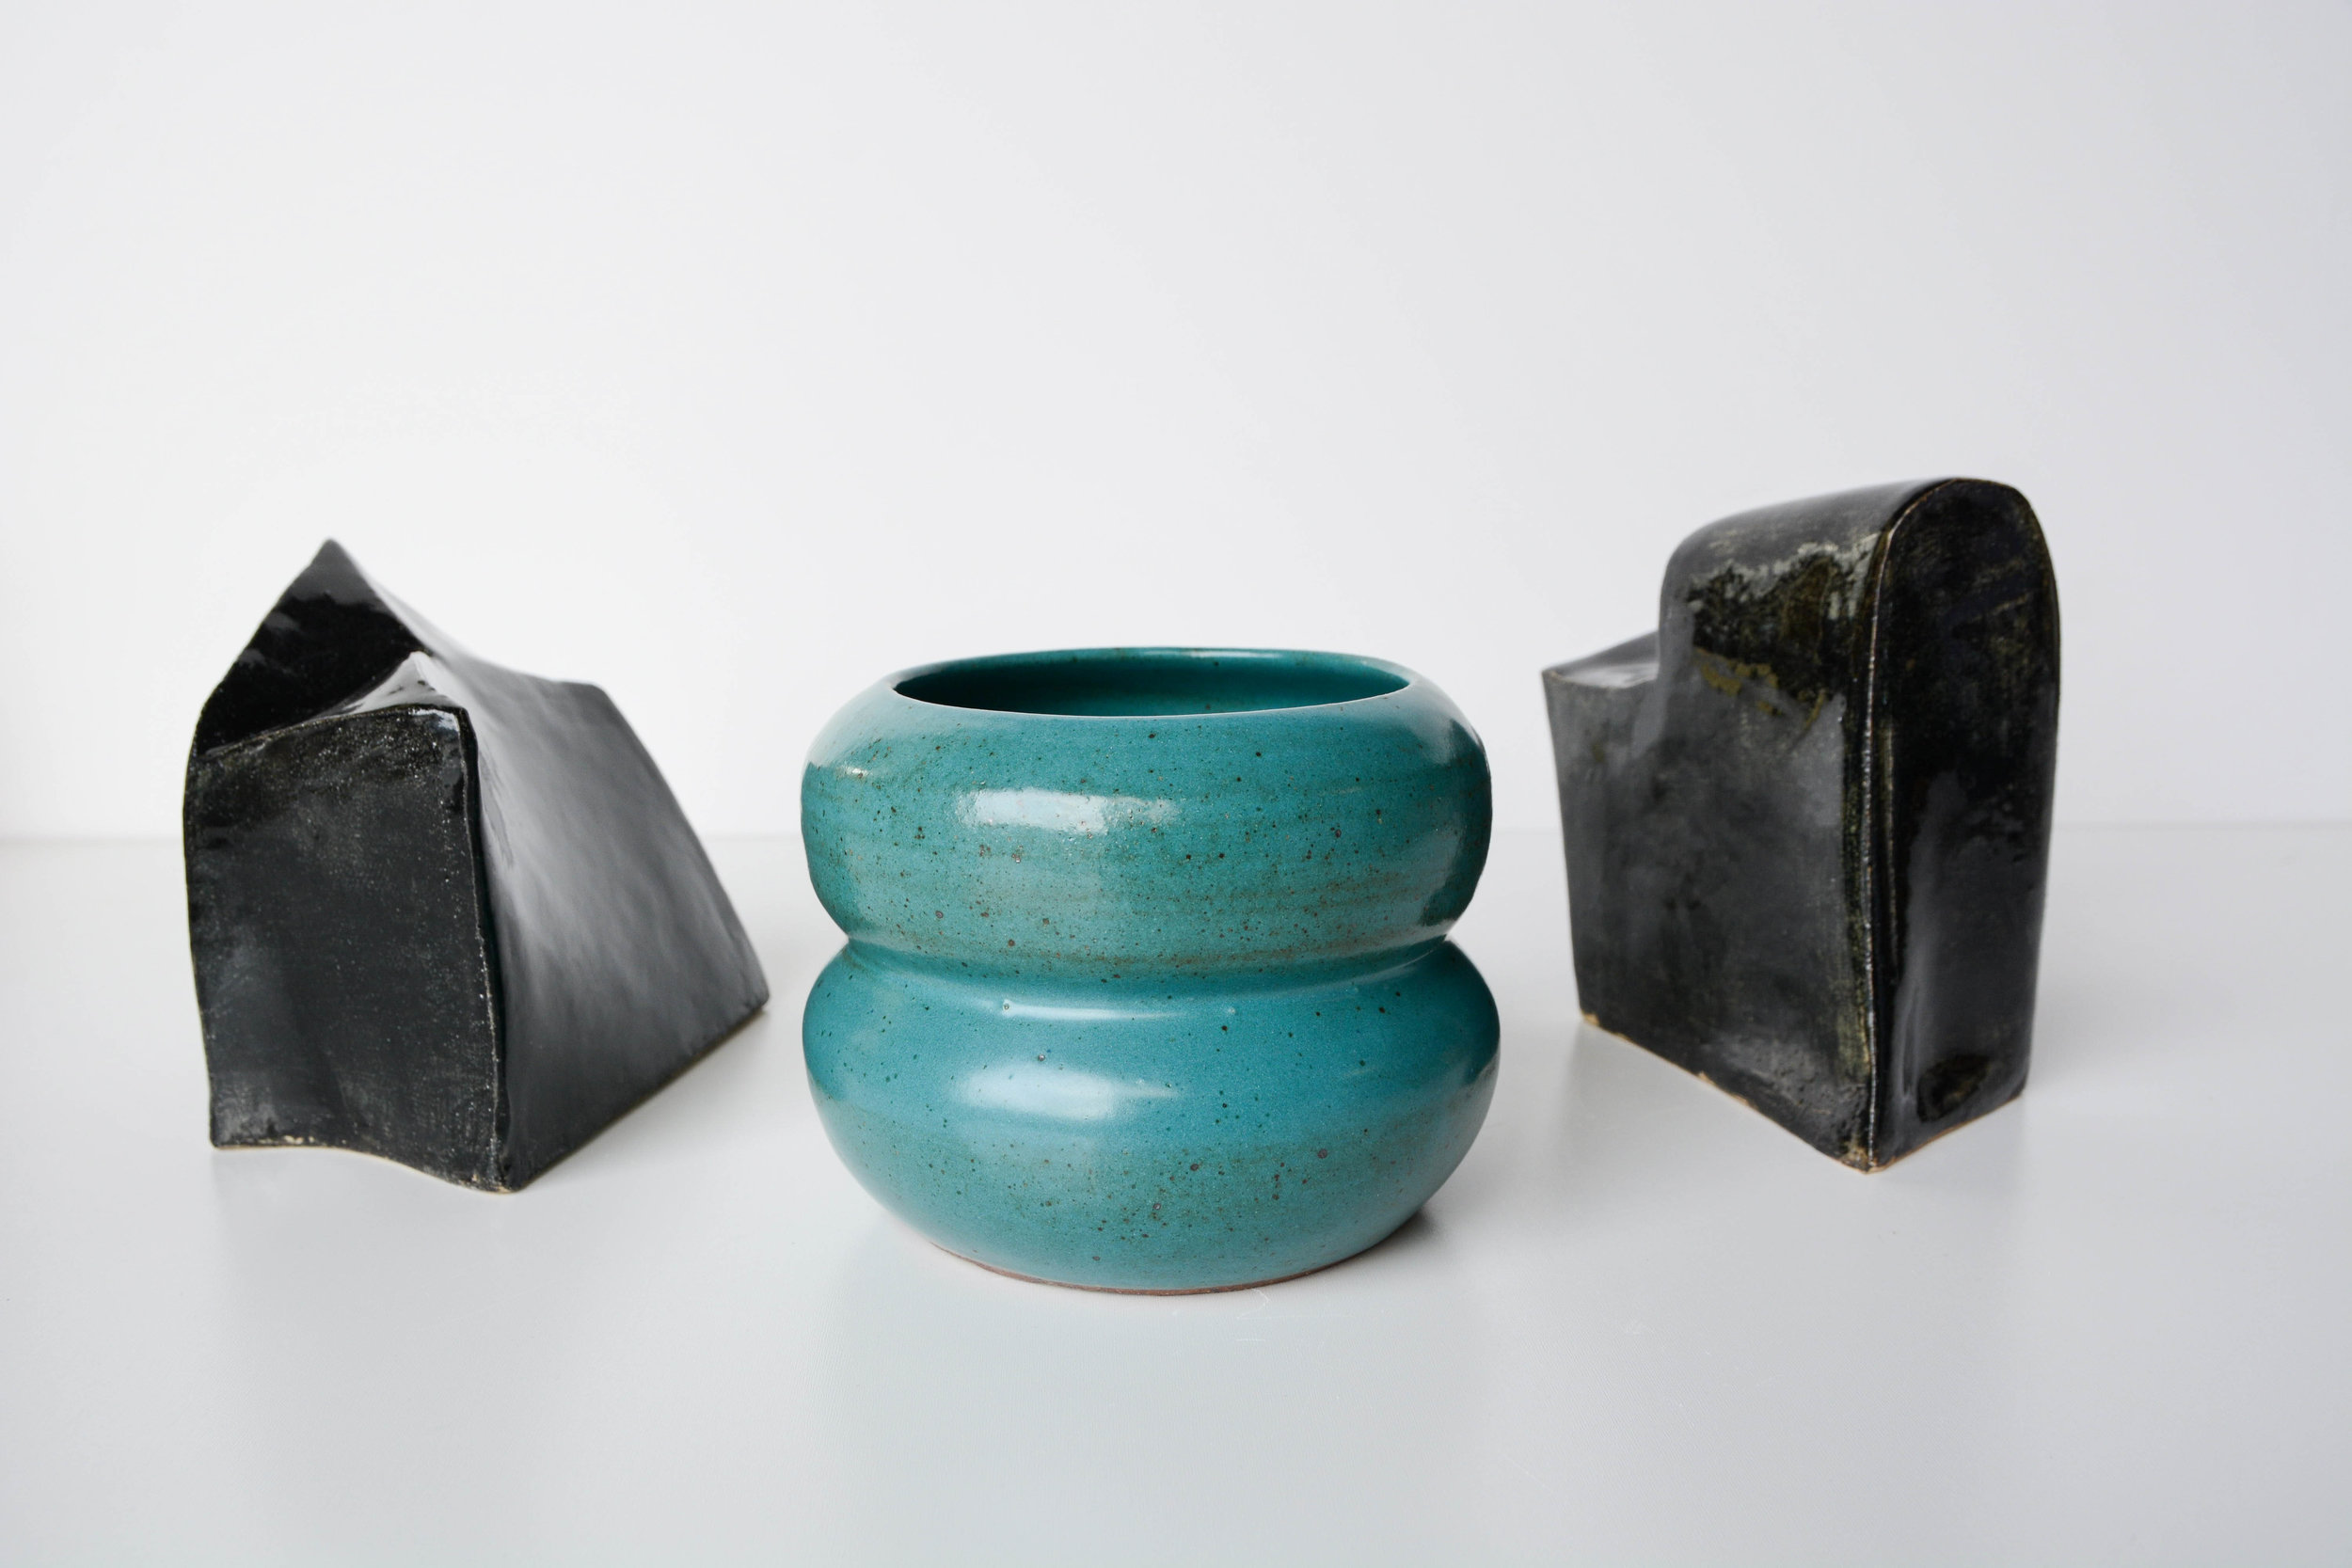 koikceramics2017 (9 of 42).jpg